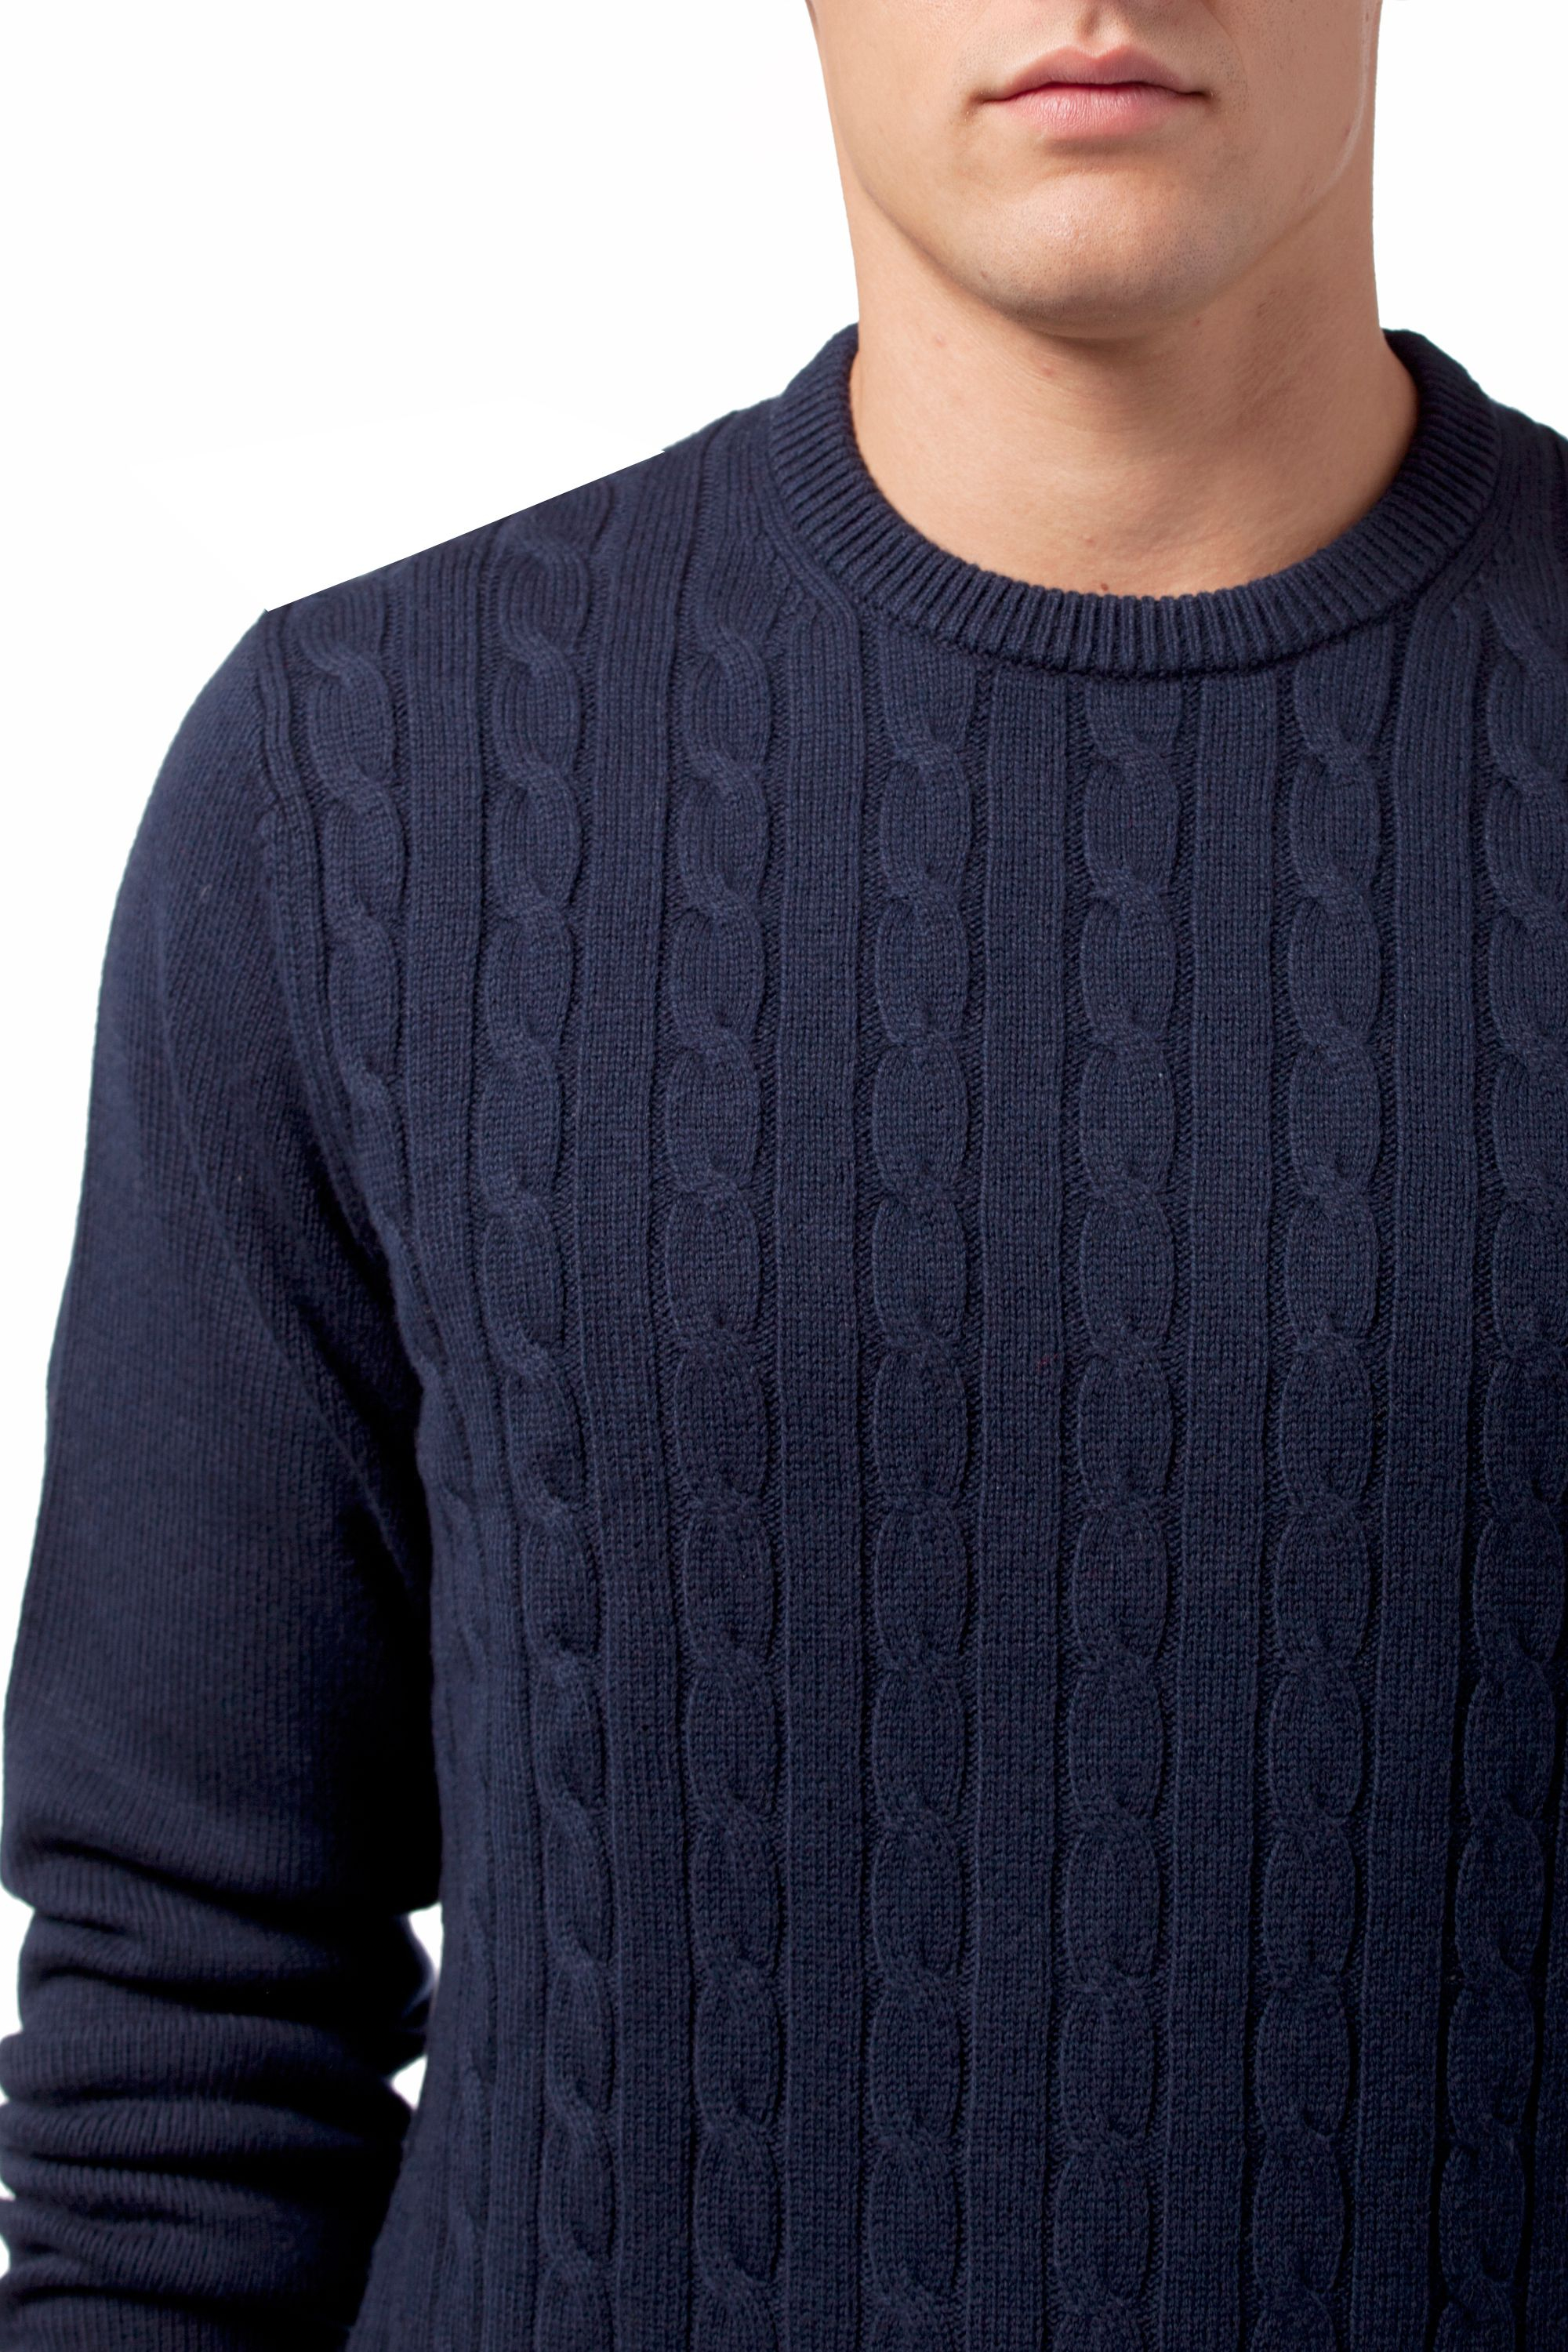 Tommy Hilfiger Niels Cable Knit Sweater In Blue For Men Lyst